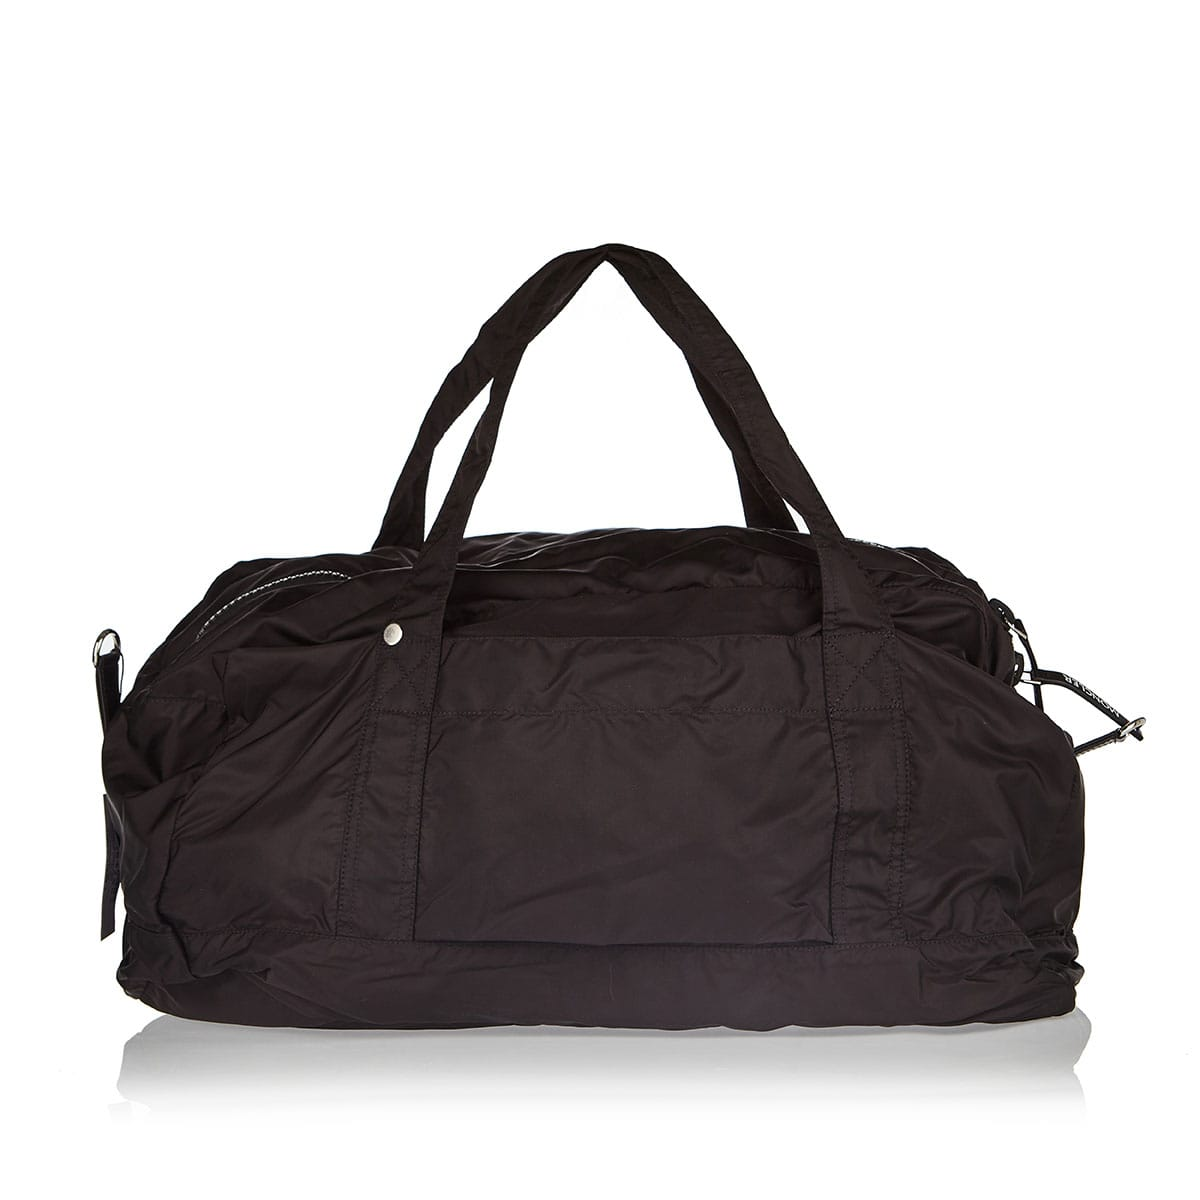 Nivelle nylon gym bag